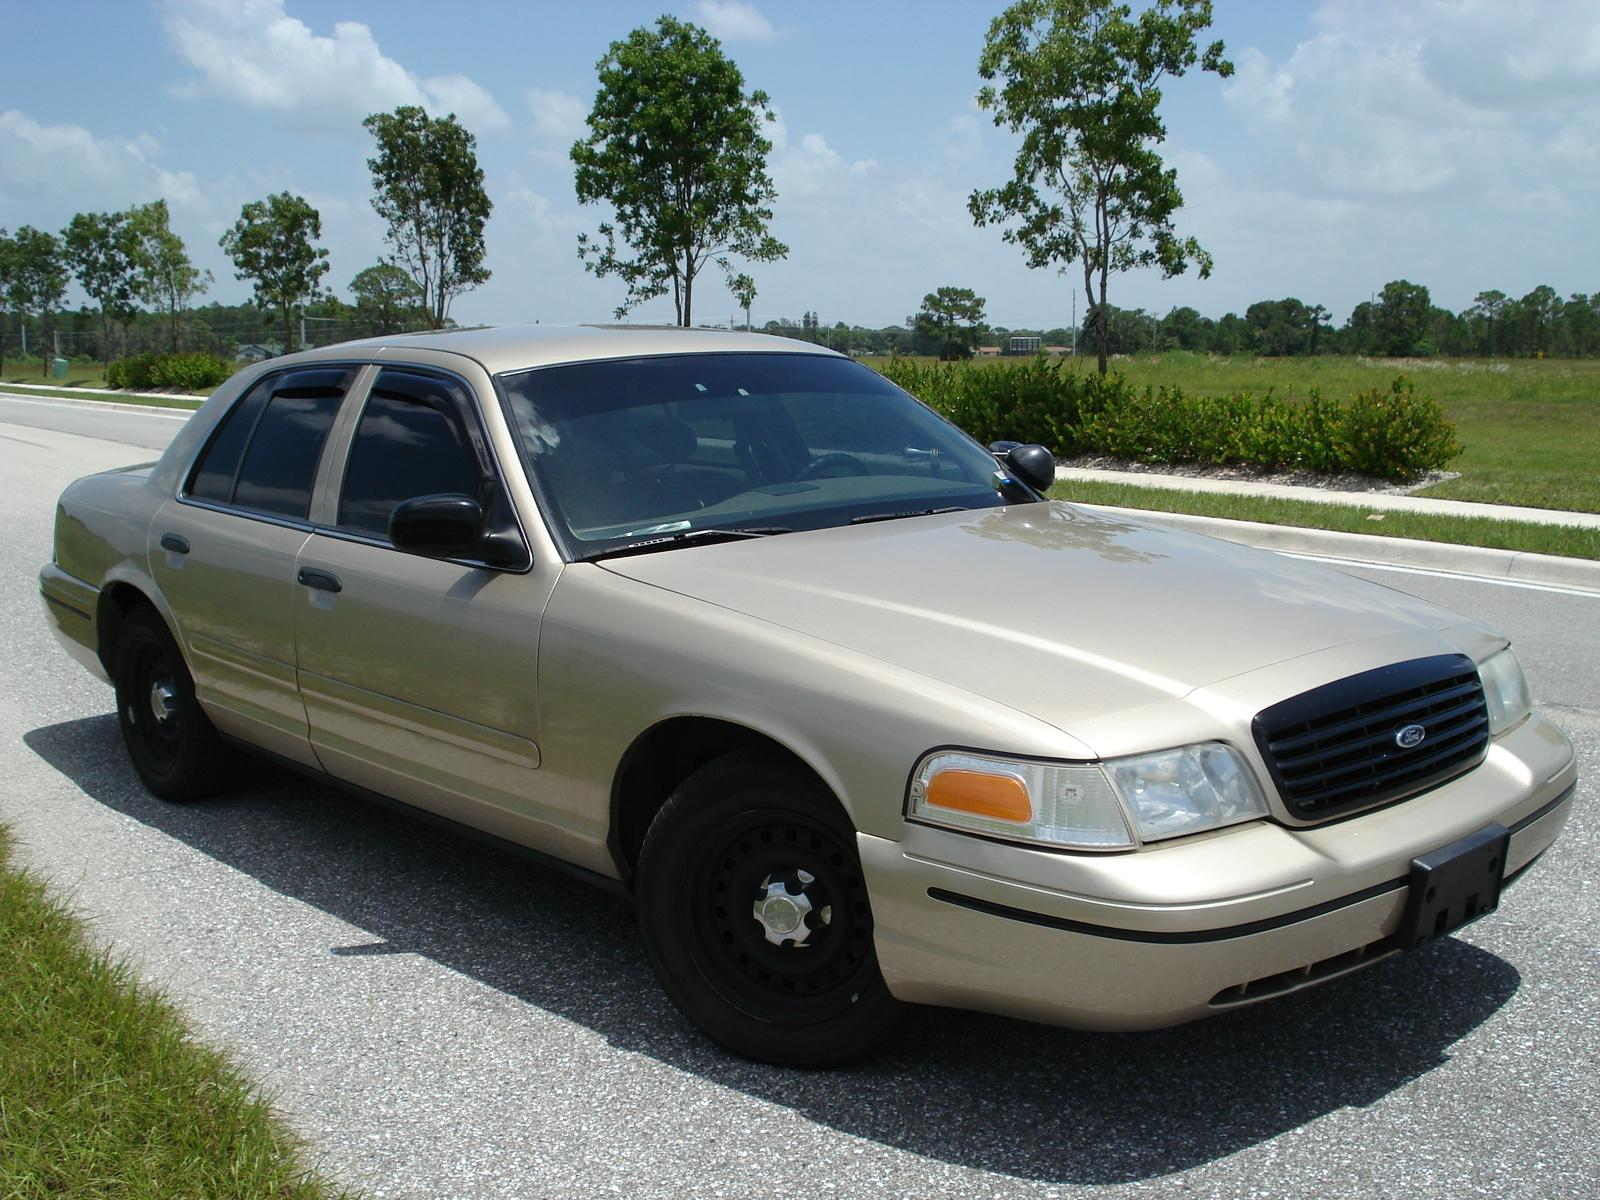 1999 Ford Crown Victoria Information And Photos Zombiedrive 92 Mustang Lx Wiring Schematics 800 1024 1280 1600 Origin